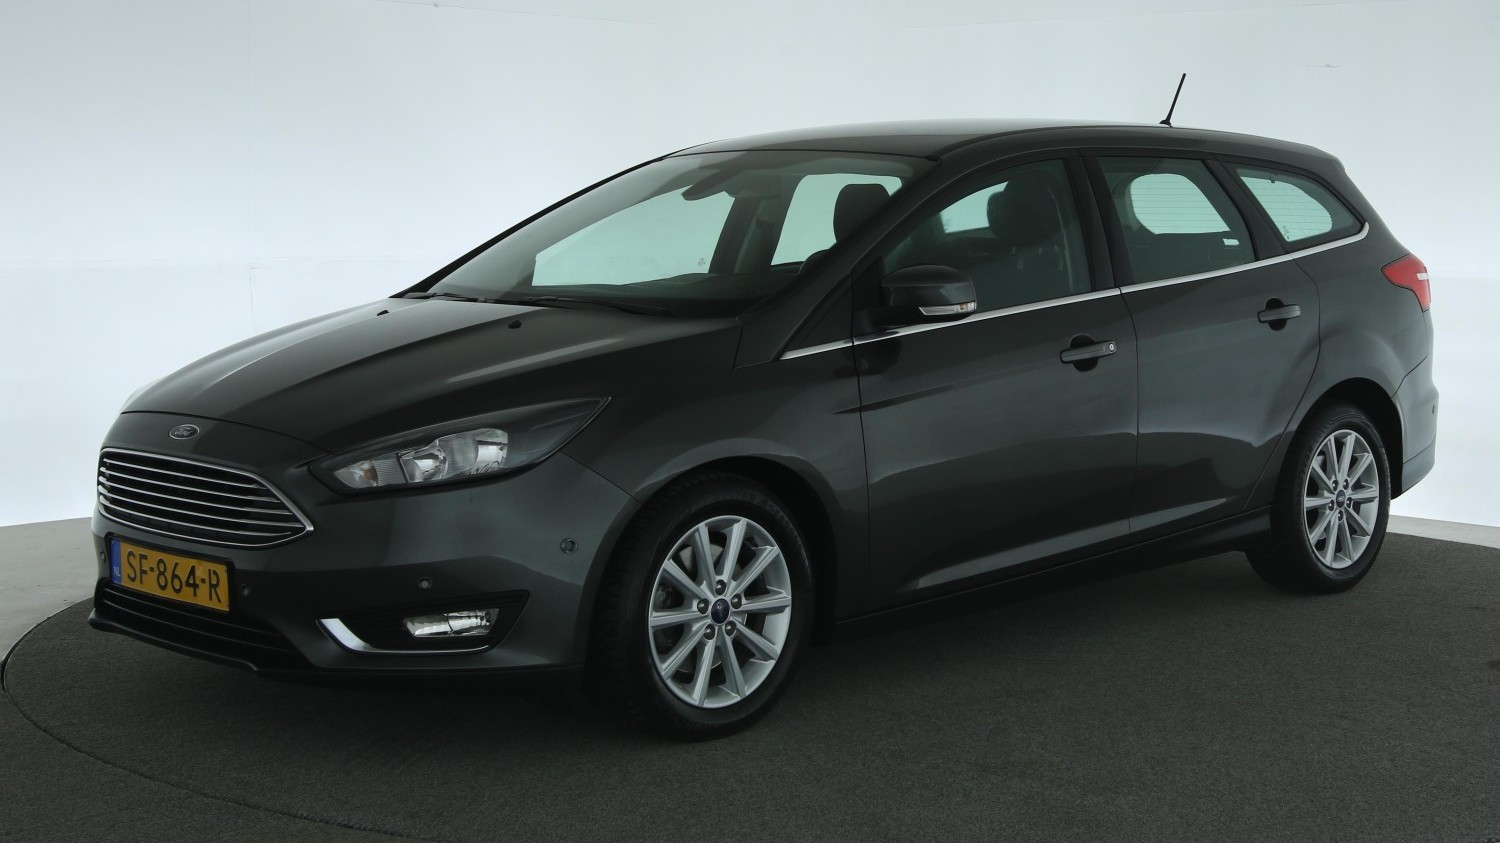 Ford Focus Station 2018 SF-864-R 1